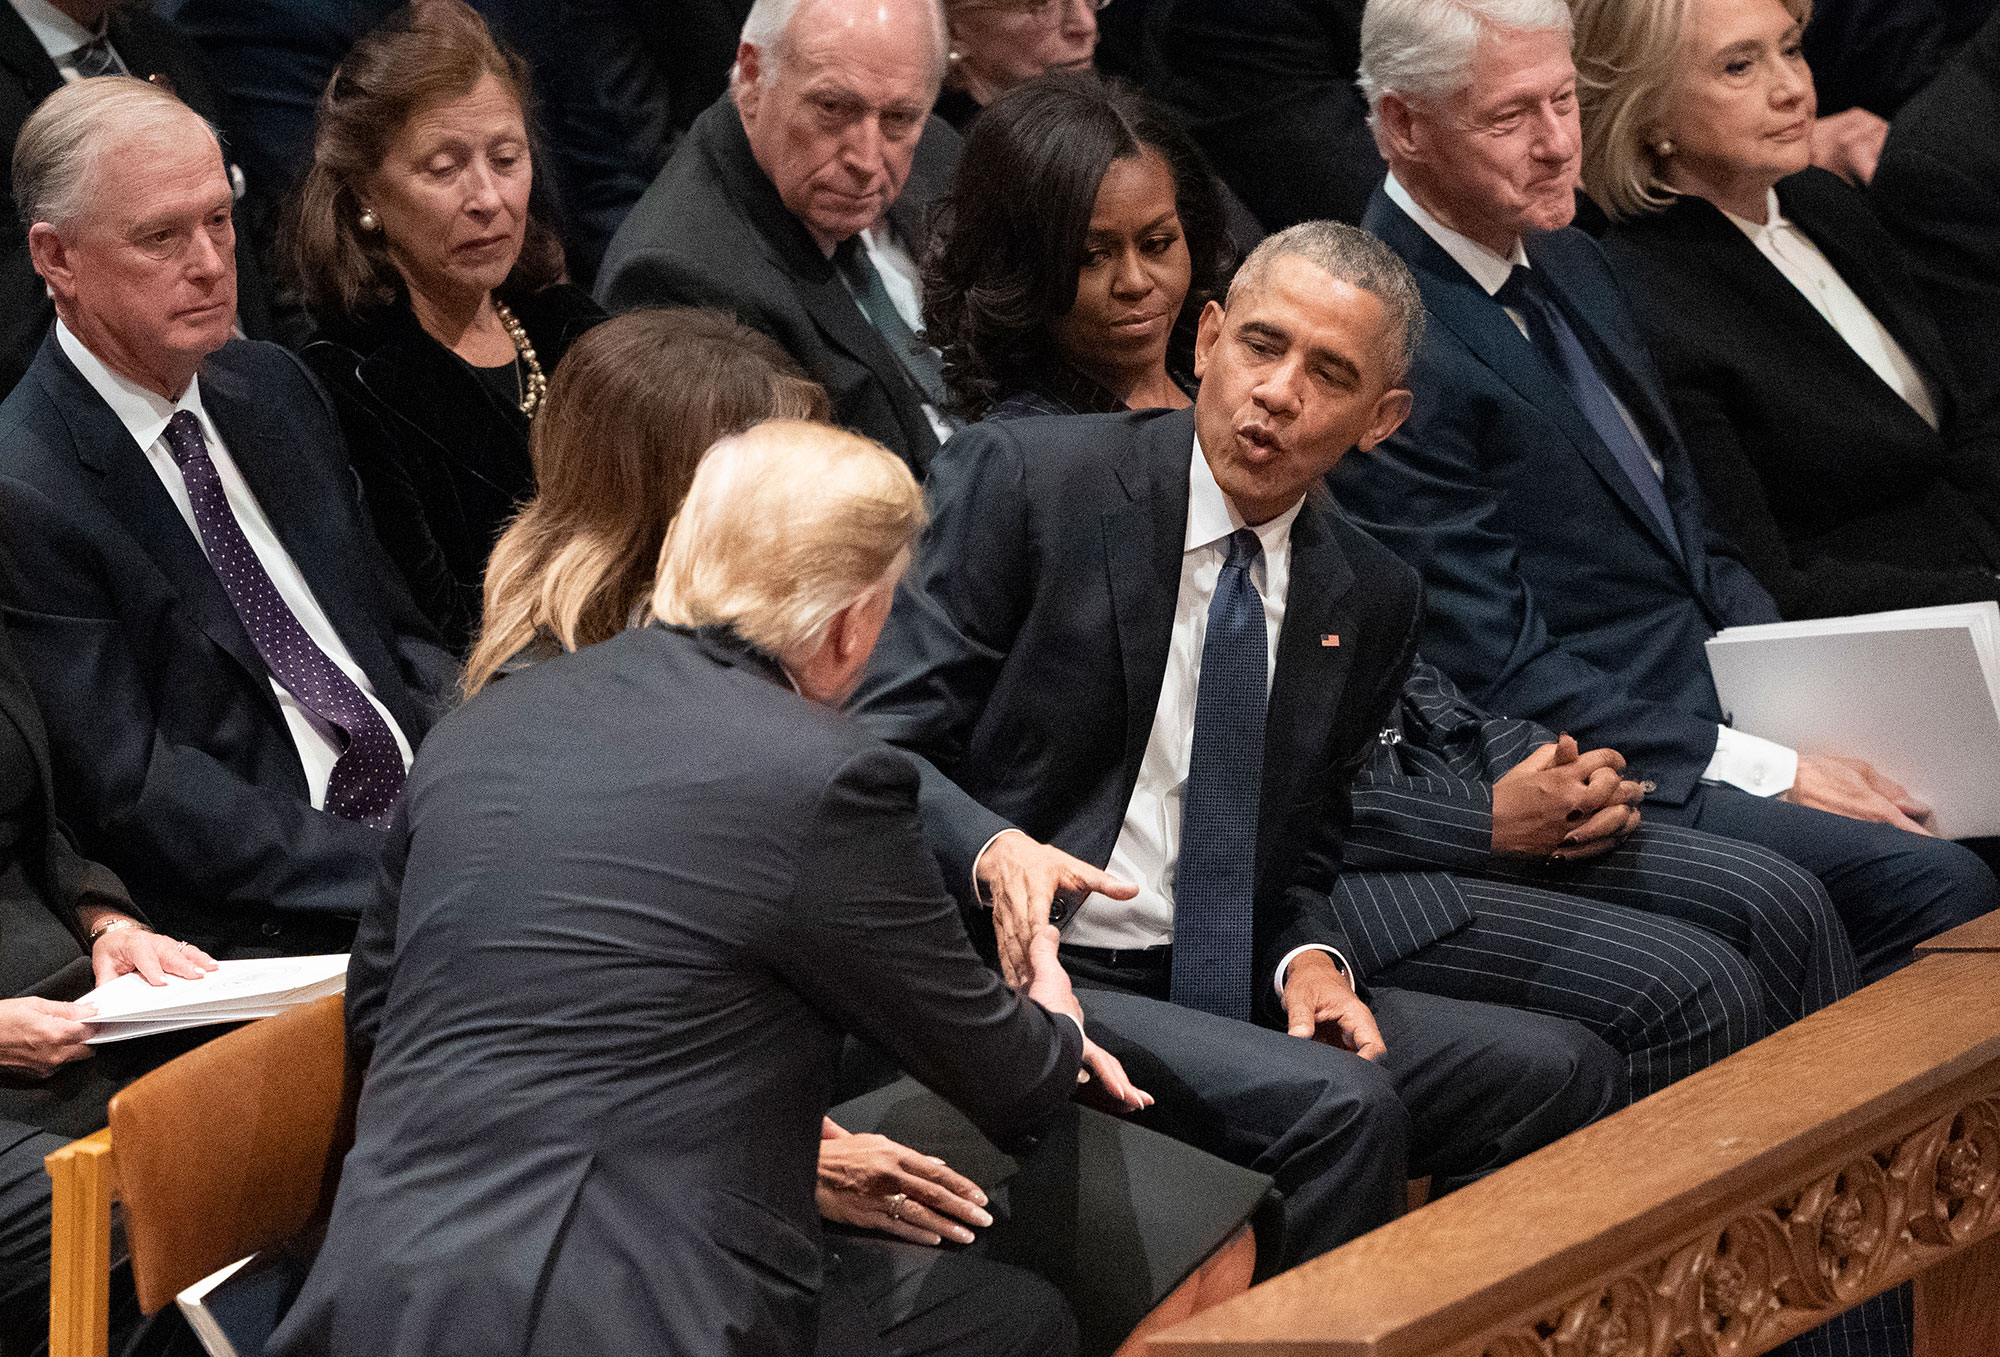 "<div class=""meta image-caption""><div class=""origin-logo origin-image none""><span>none</span></div><span class=""caption-text"">President Donald Trump shakes hands with former President Barack Obama during a State Funeral service for former President George H.W. Bush. (Carolyn Kaster/AP Photo)</span></div>"